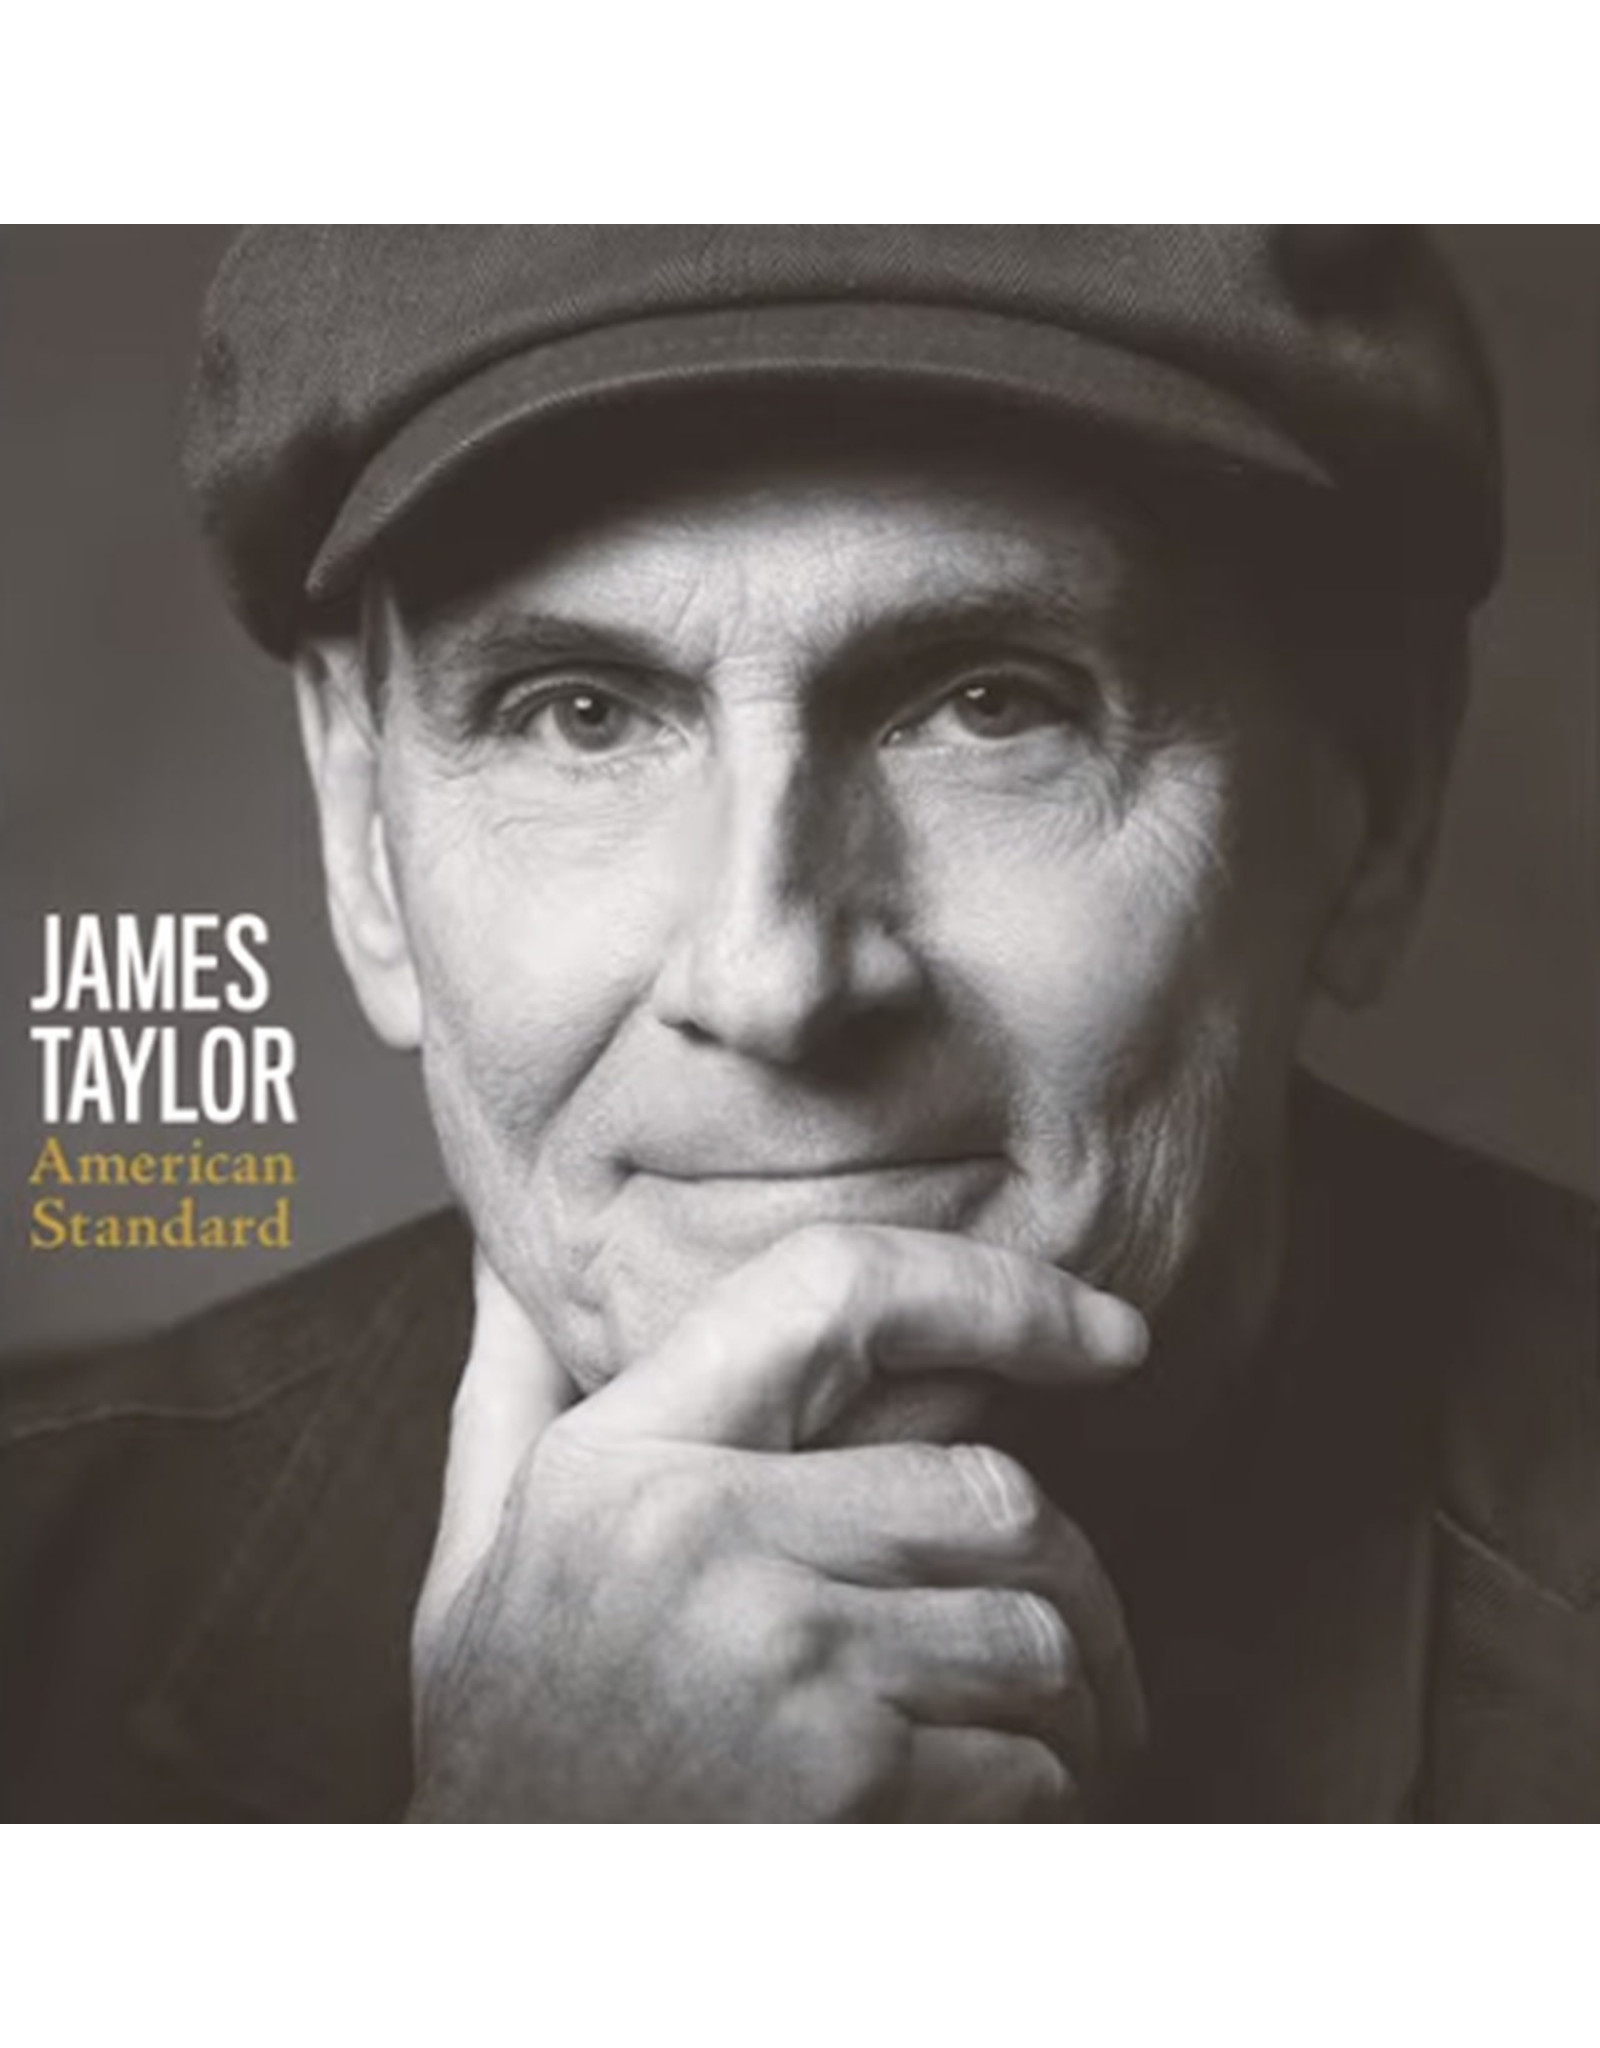 James Taylor - American Standard (Deluxe Edition)